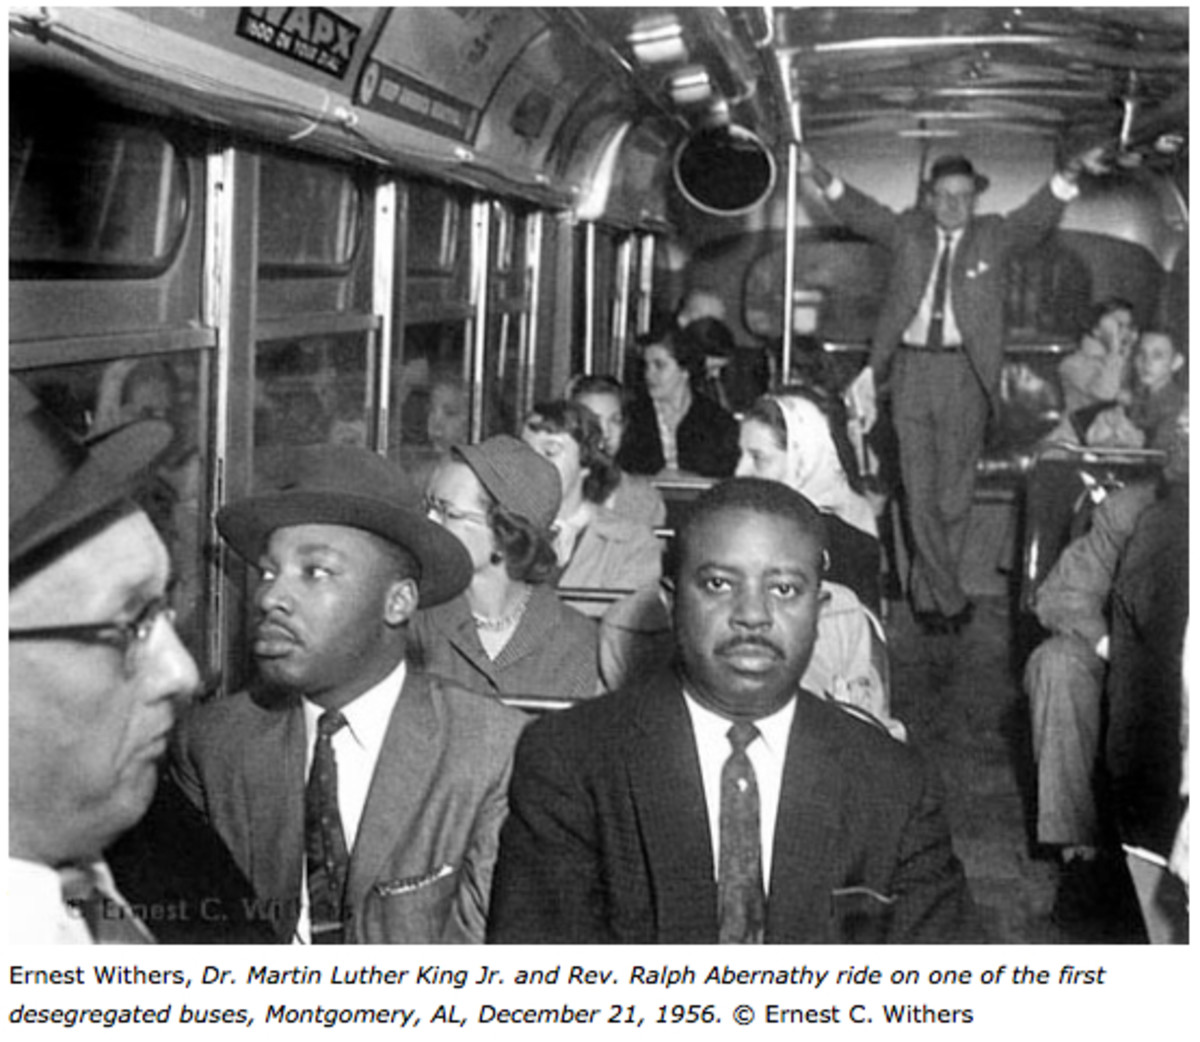 The ending of the Montgomery, AL Bus Boycott was one of the many historic events that Ernest Withers allowed his children to witness.